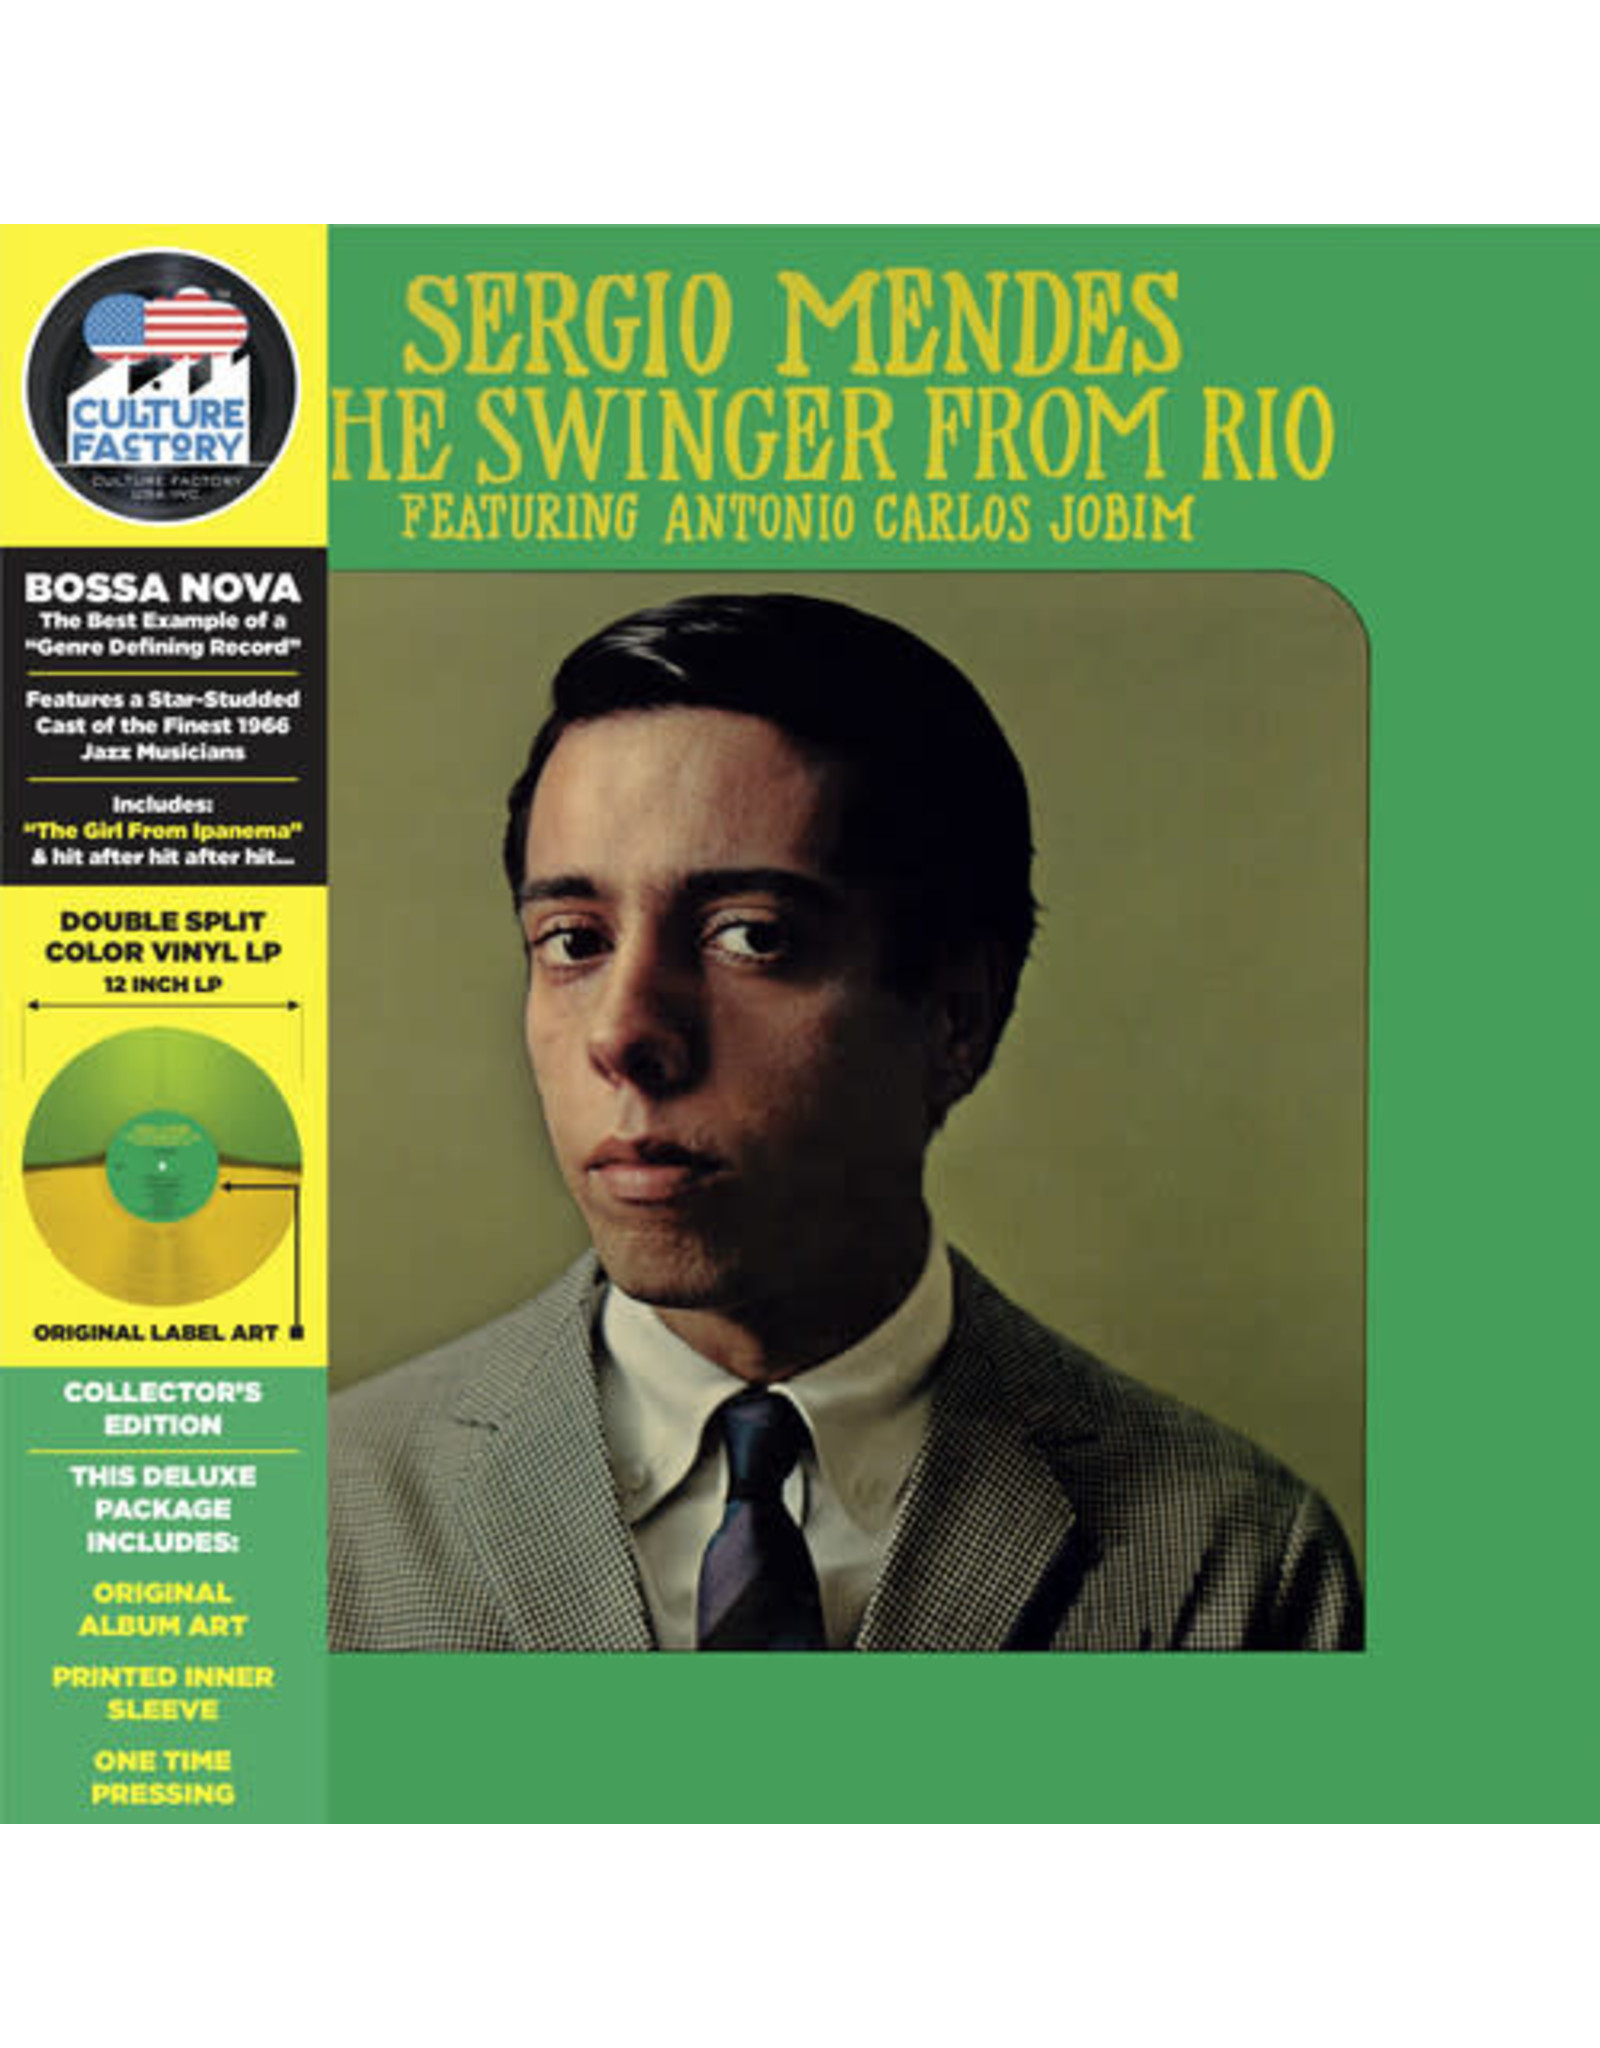 New Vinyl Sergio Mendes - The Swinger From Rio (Collector's Edition, Colored) LP